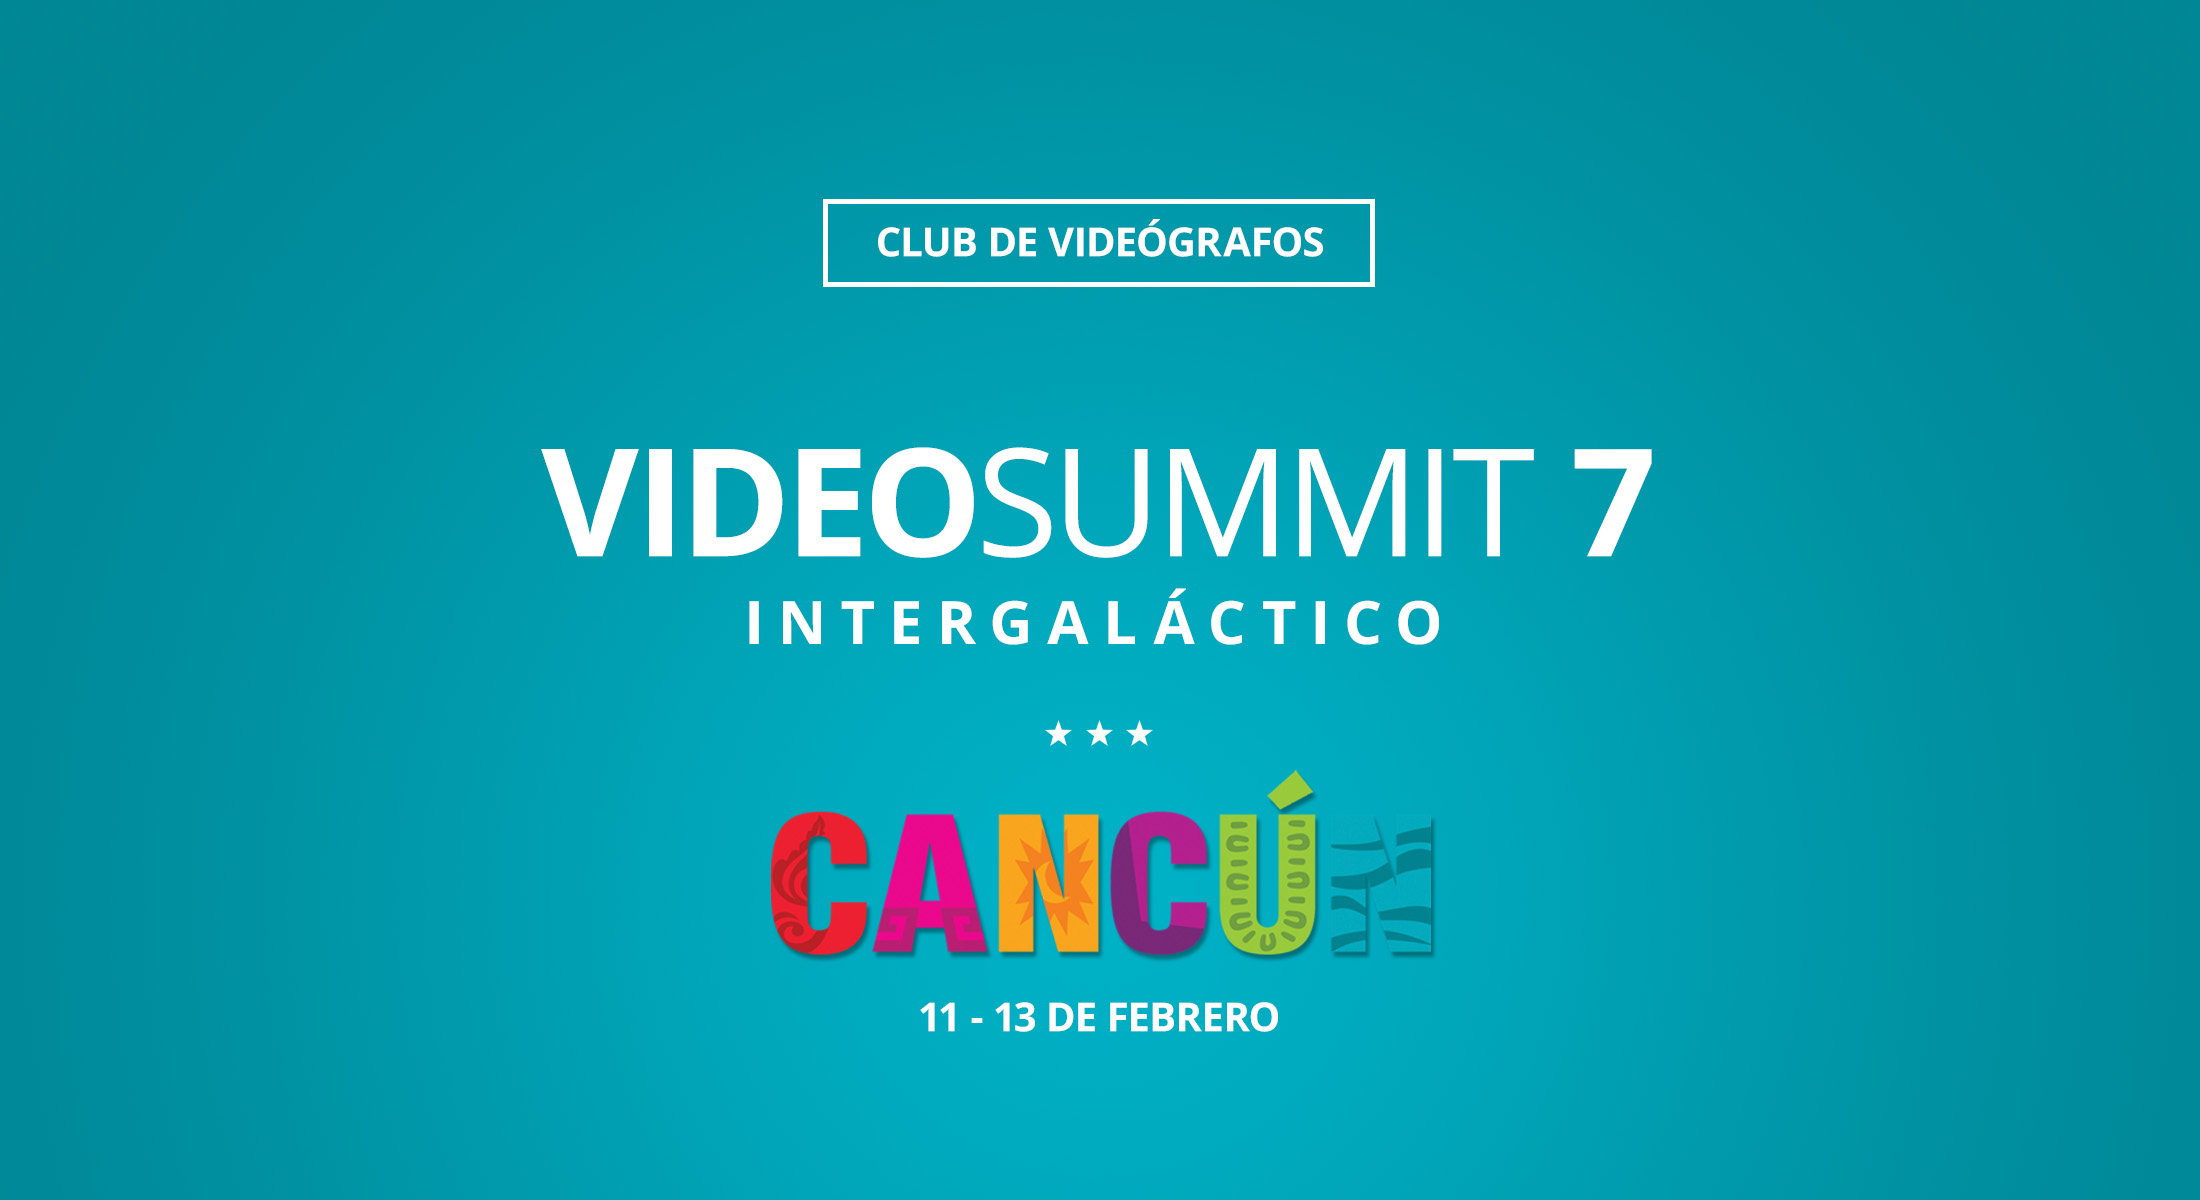 VideoSUMMIT 7 Cancún